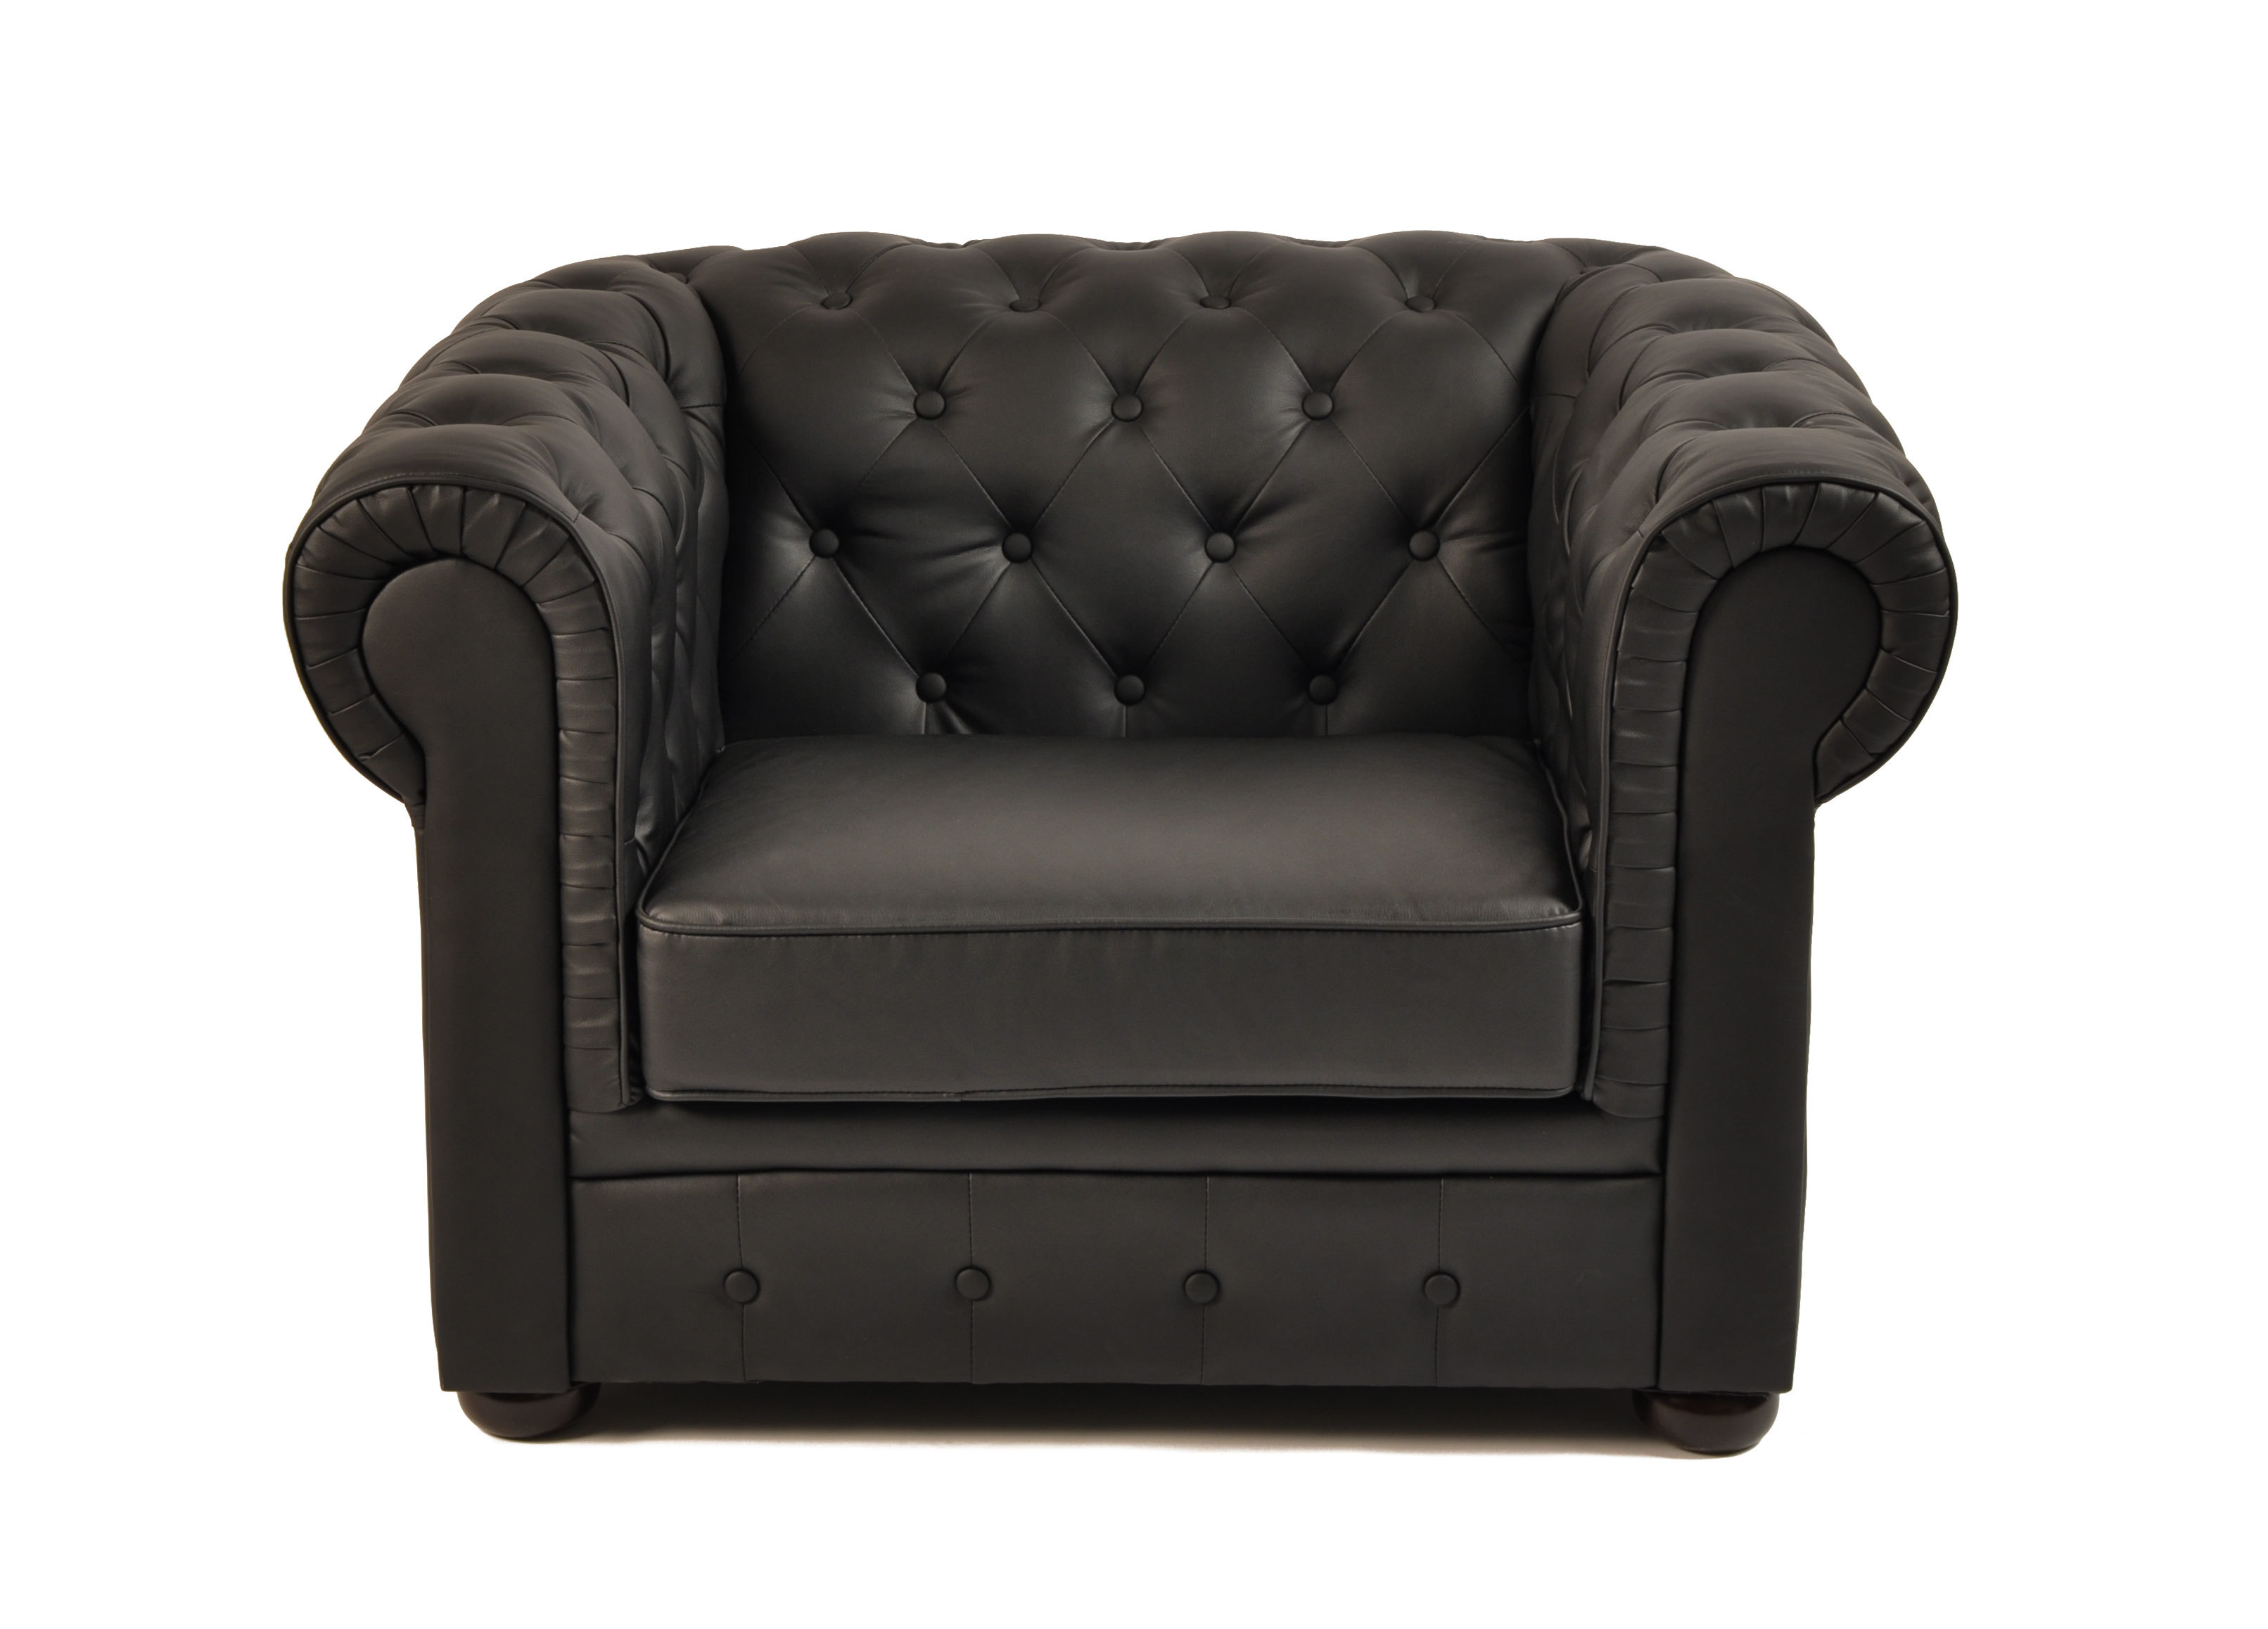 sessel chesterfield schwarz miliboo. Black Bedroom Furniture Sets. Home Design Ideas